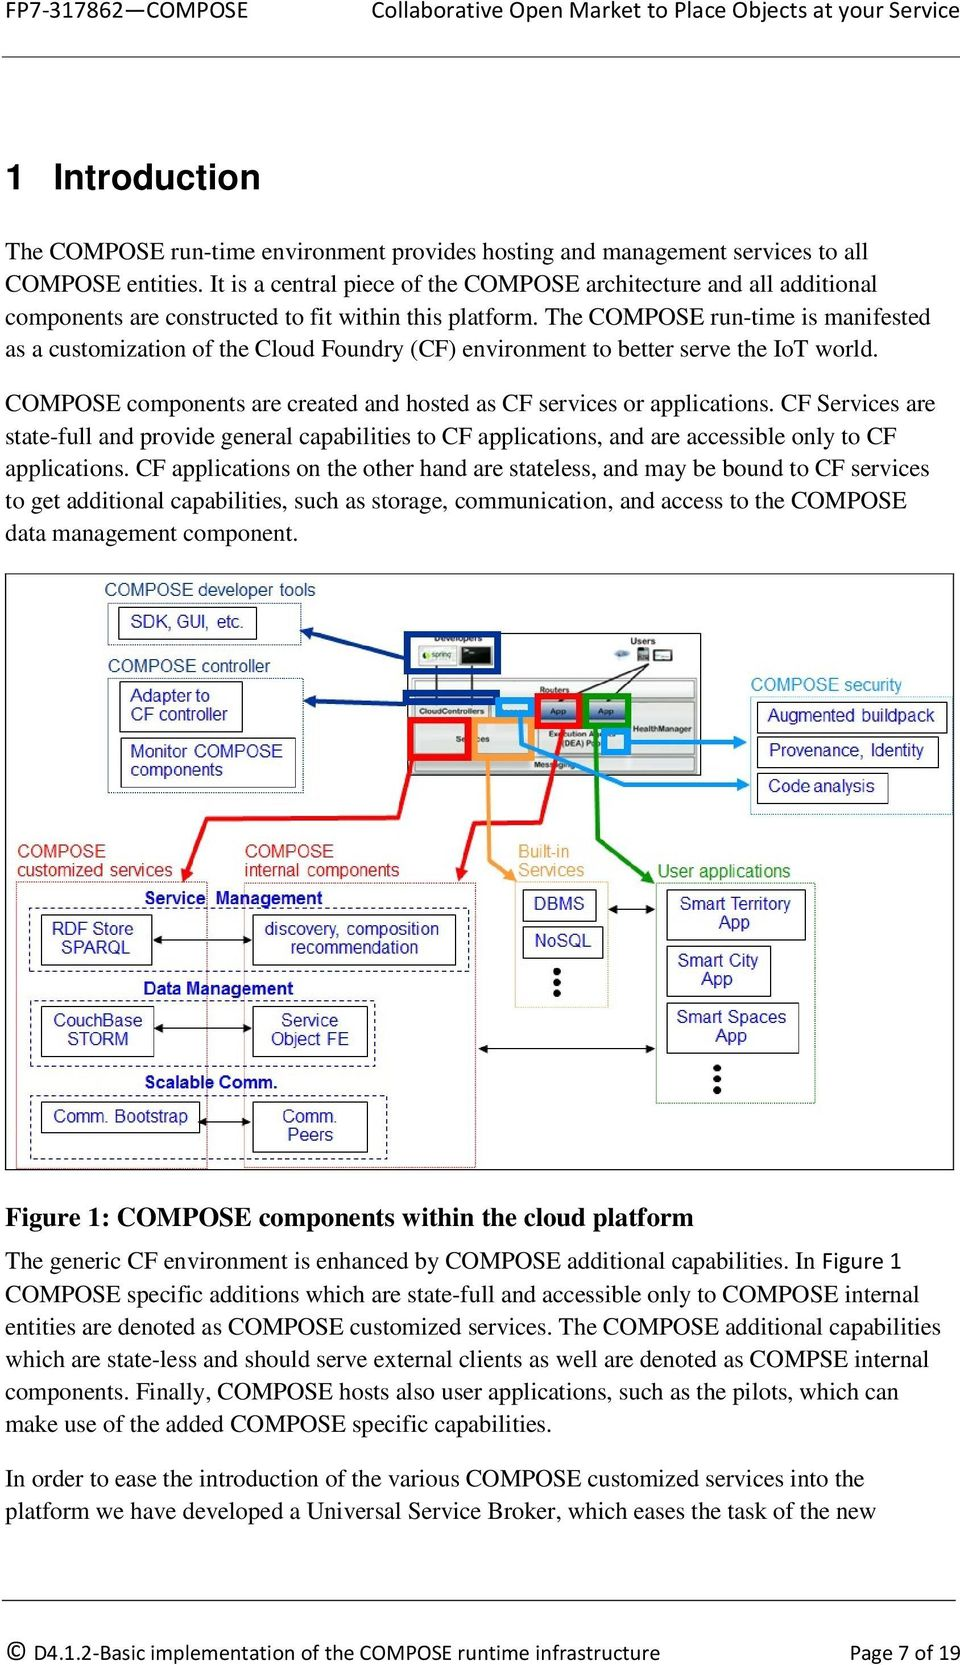 The COMPOSE run-time is manifested as a customization of the Cloud Foundry (CF) environment to better serve the IoT world. COMPOSE components are created and hosted as CF services or applications.